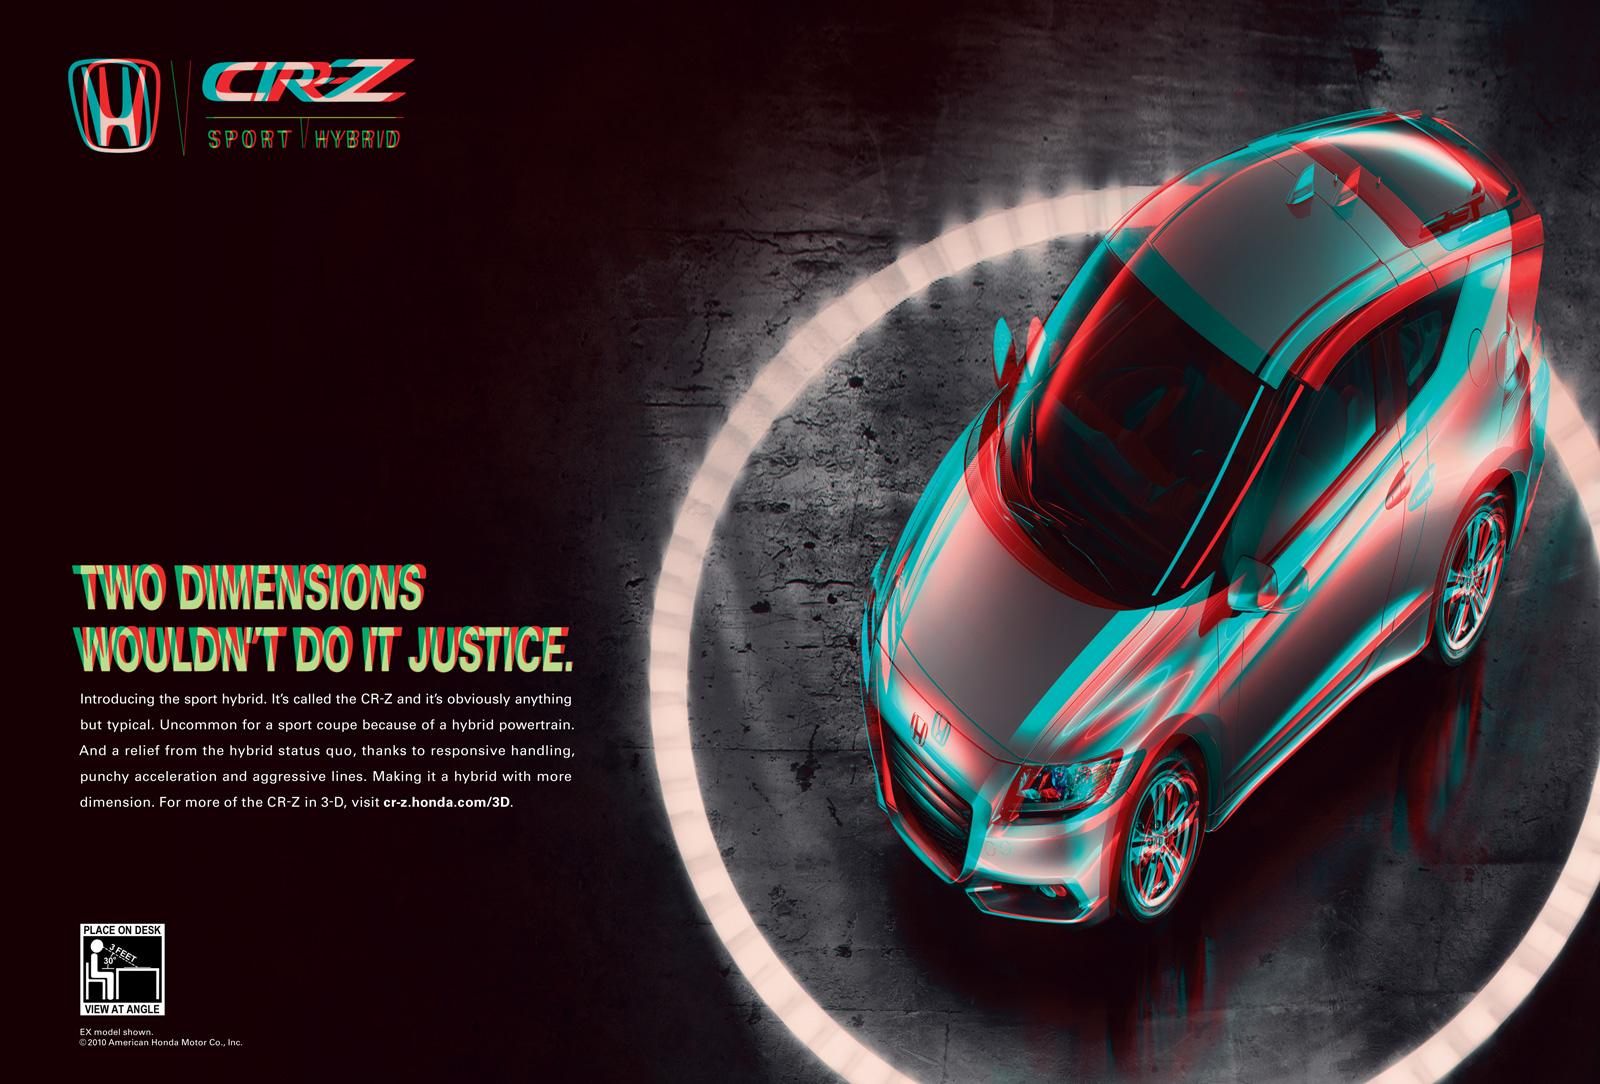 Honda Print Advert By RPA Two Dimensions Wouldnt Do It Justice